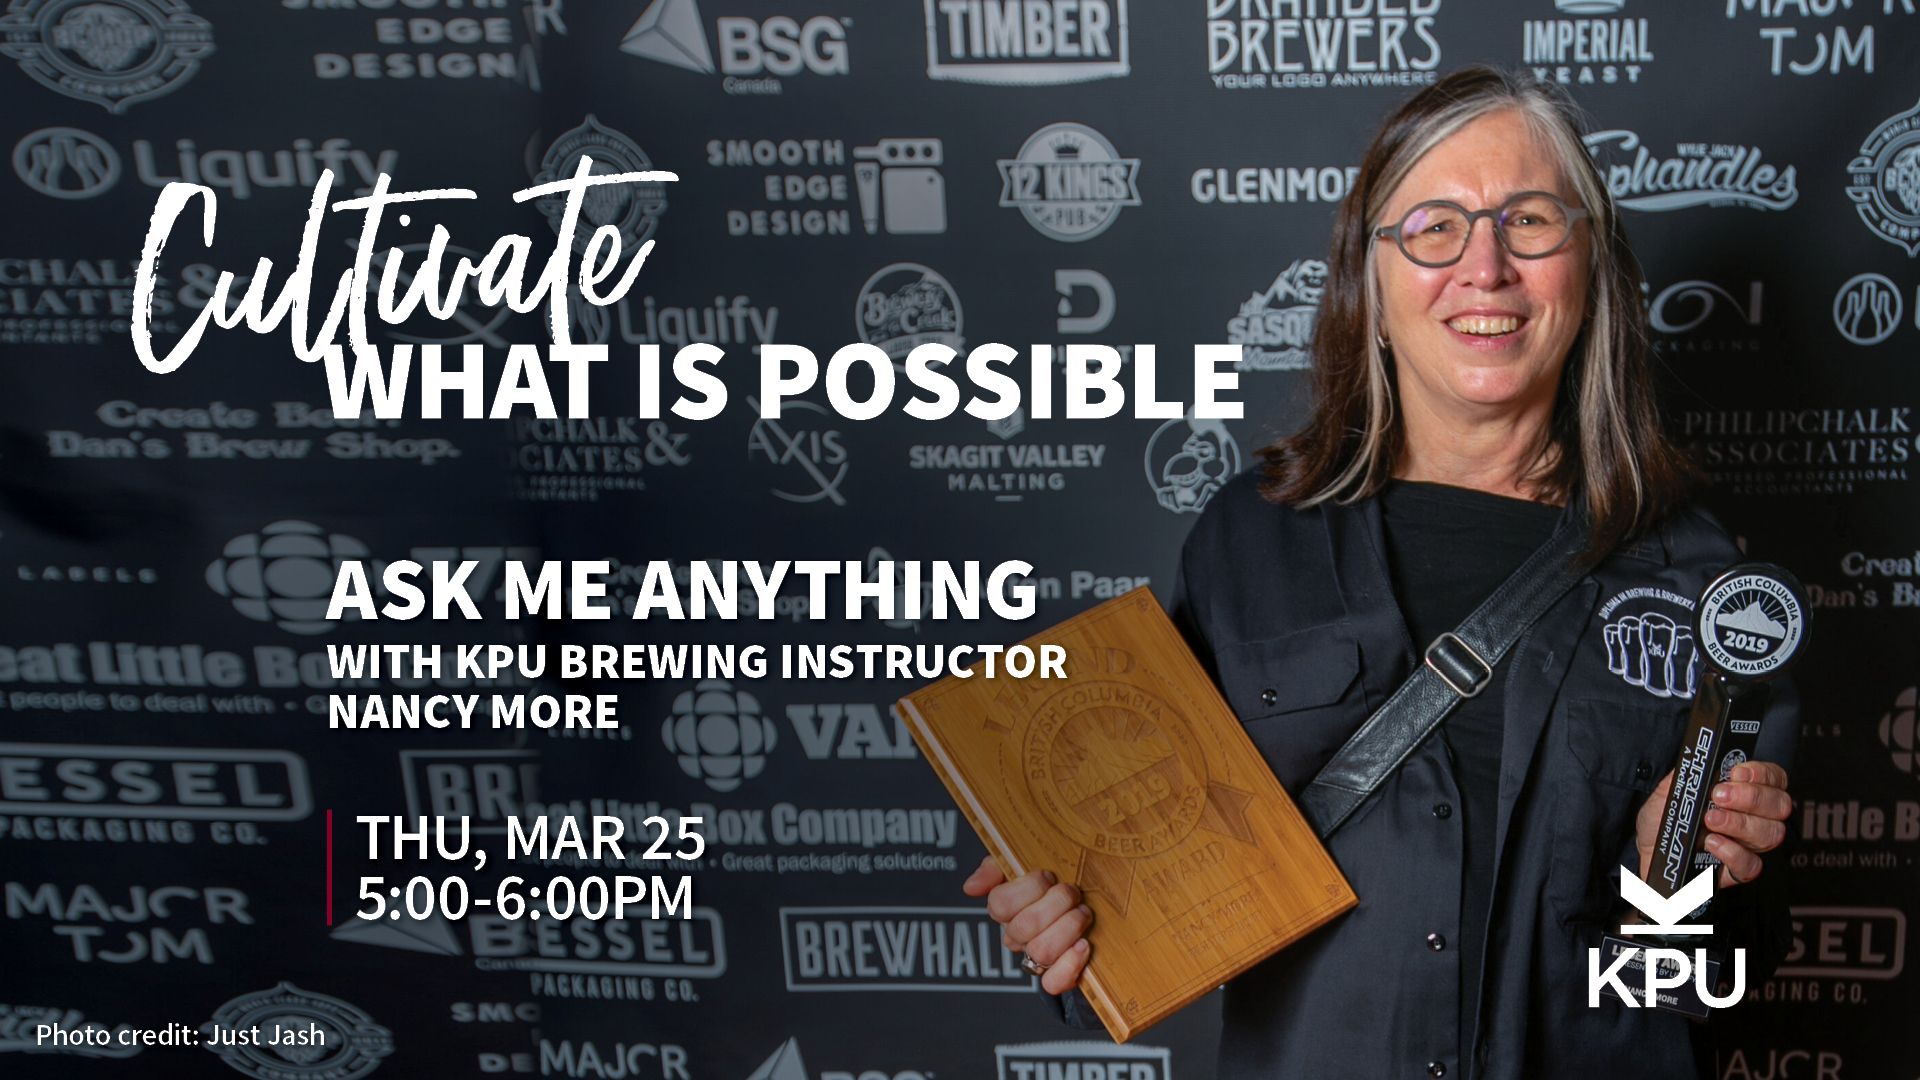 KPU Brewing, Ask Me Anything, info session, information session, Kwantlen Polytechnic University, KPU, Nancy More, brewing school, craft beer, brewmaster, Pink Boots Canada